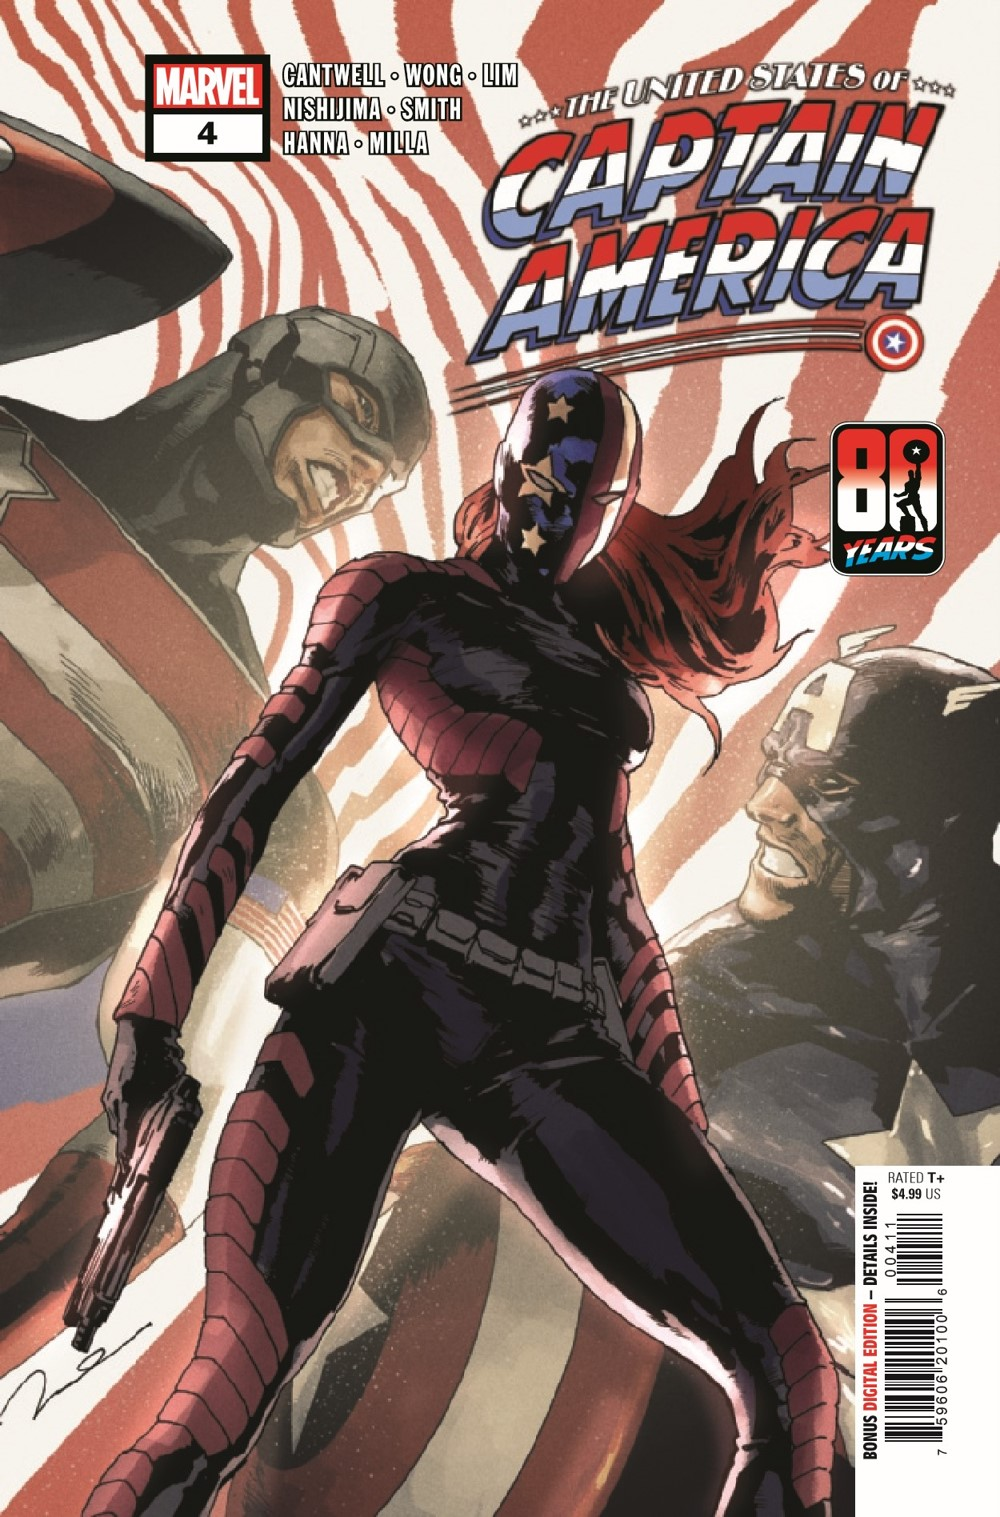 USCAPA2021004_Preview-1 ComicList Previews: UNITED STATES OF CAPTAIN AMERICA #4 (OF 5)